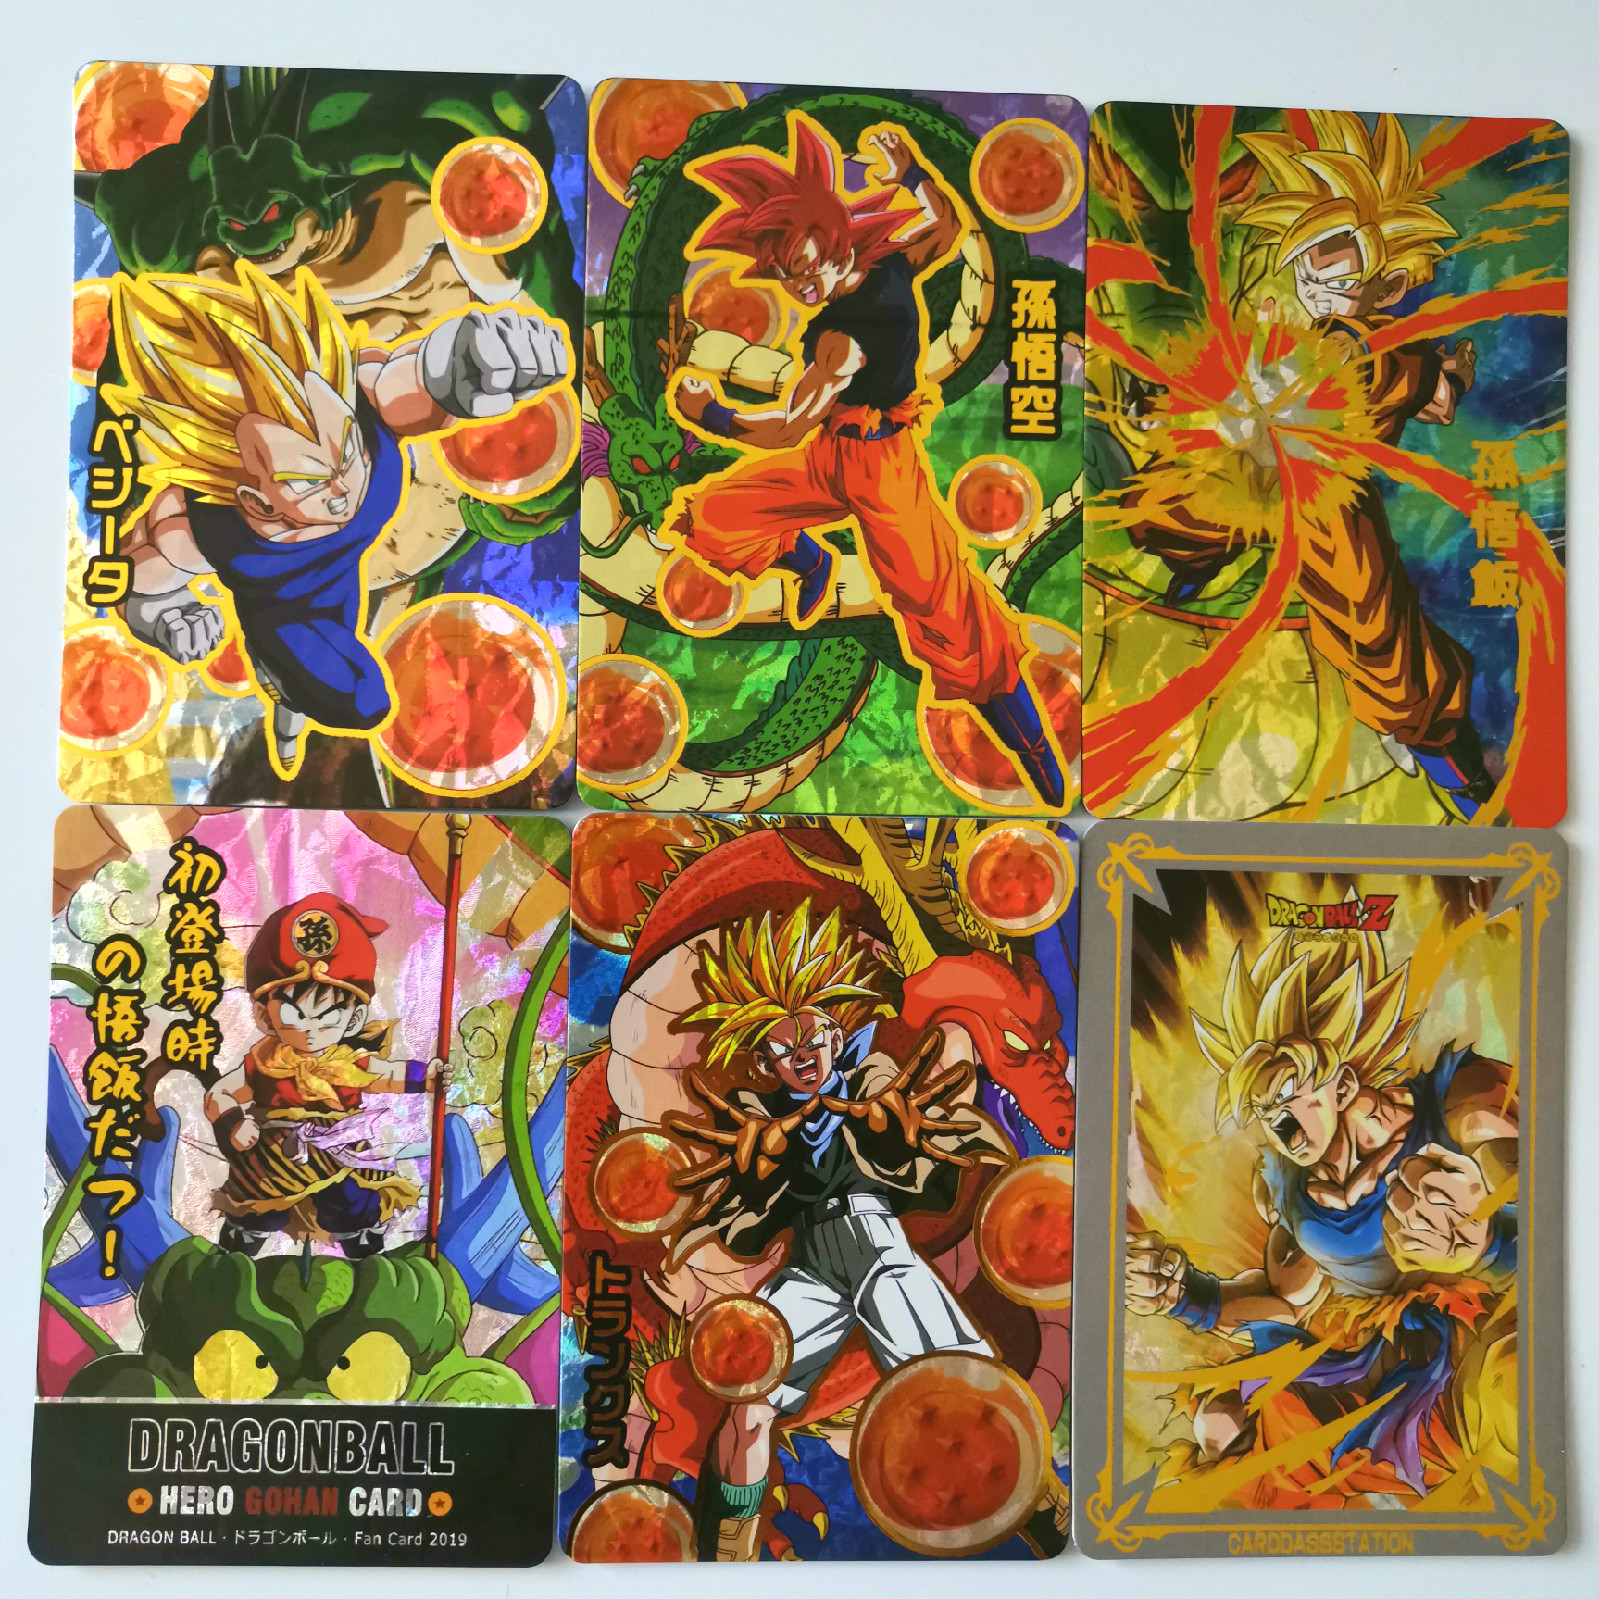 32pcs/set New Super Dragon Ball Z Hot Stamping Process Heroes Battle Card Ultra Instinct Goku Vegeta Game Collection Anime Cards